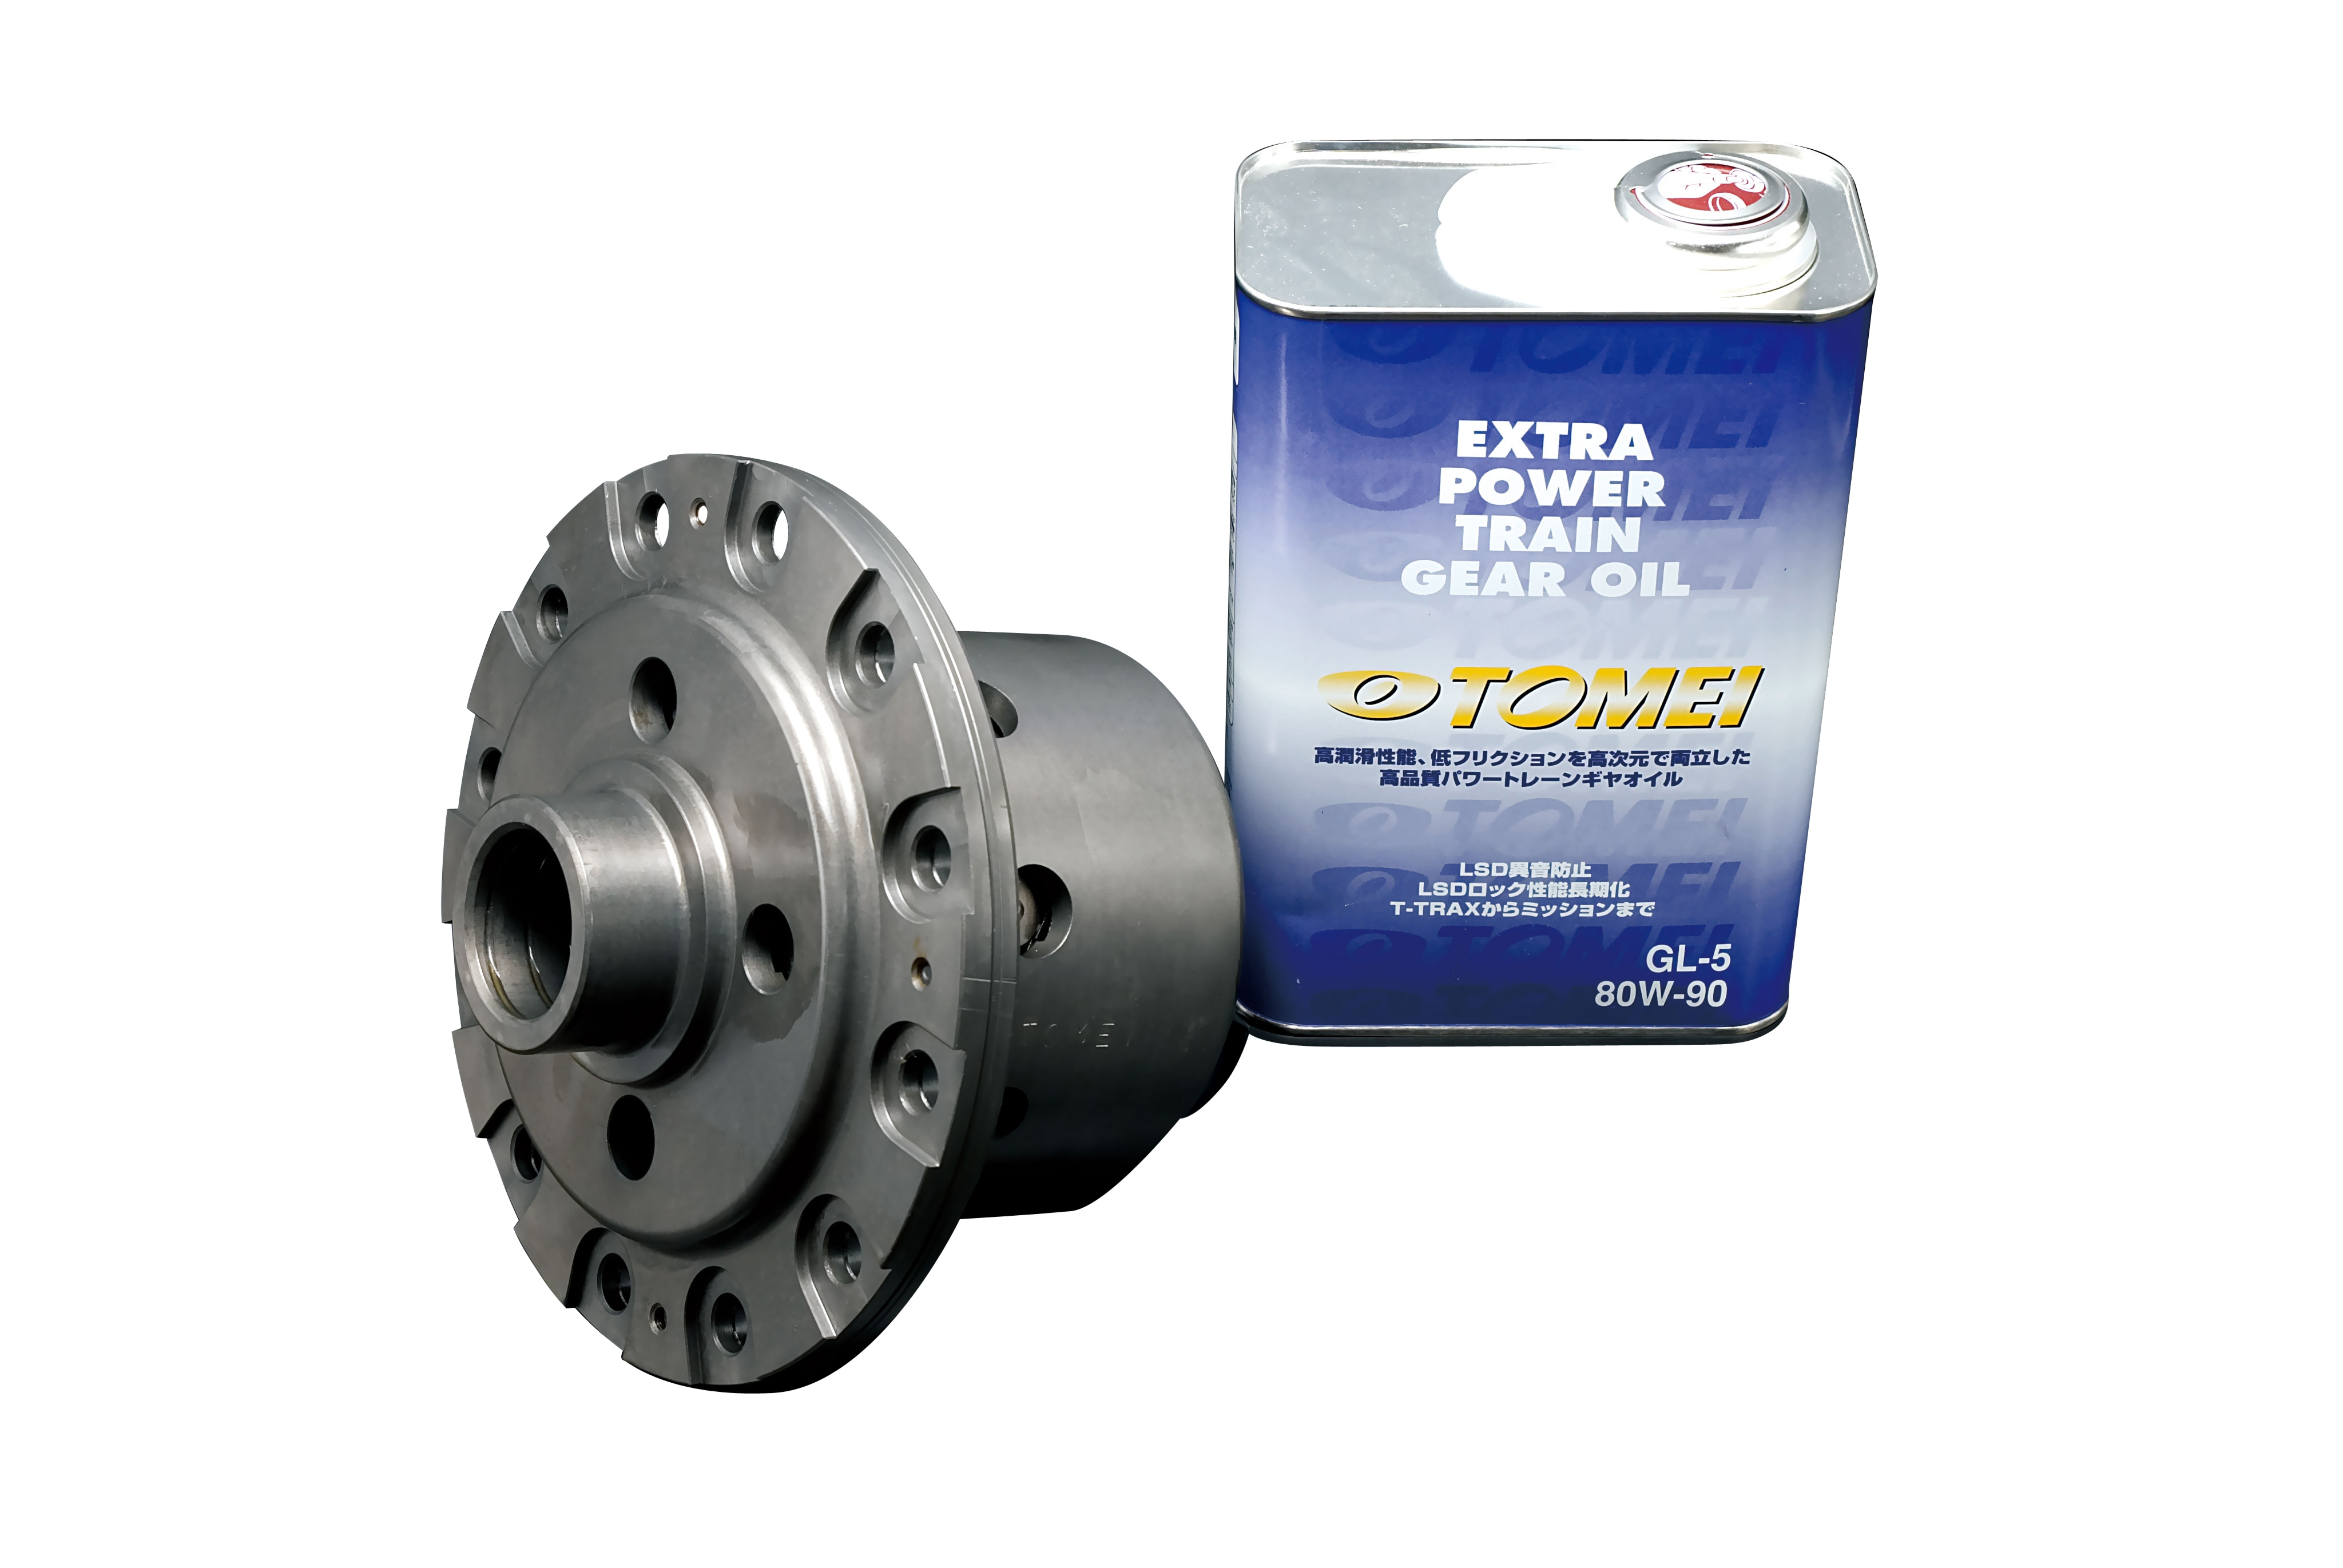 Tomei ZA1 1.5-Way LSD Kit Technical Trax Advance For Mazda Roadster/MX-5 NA6CE